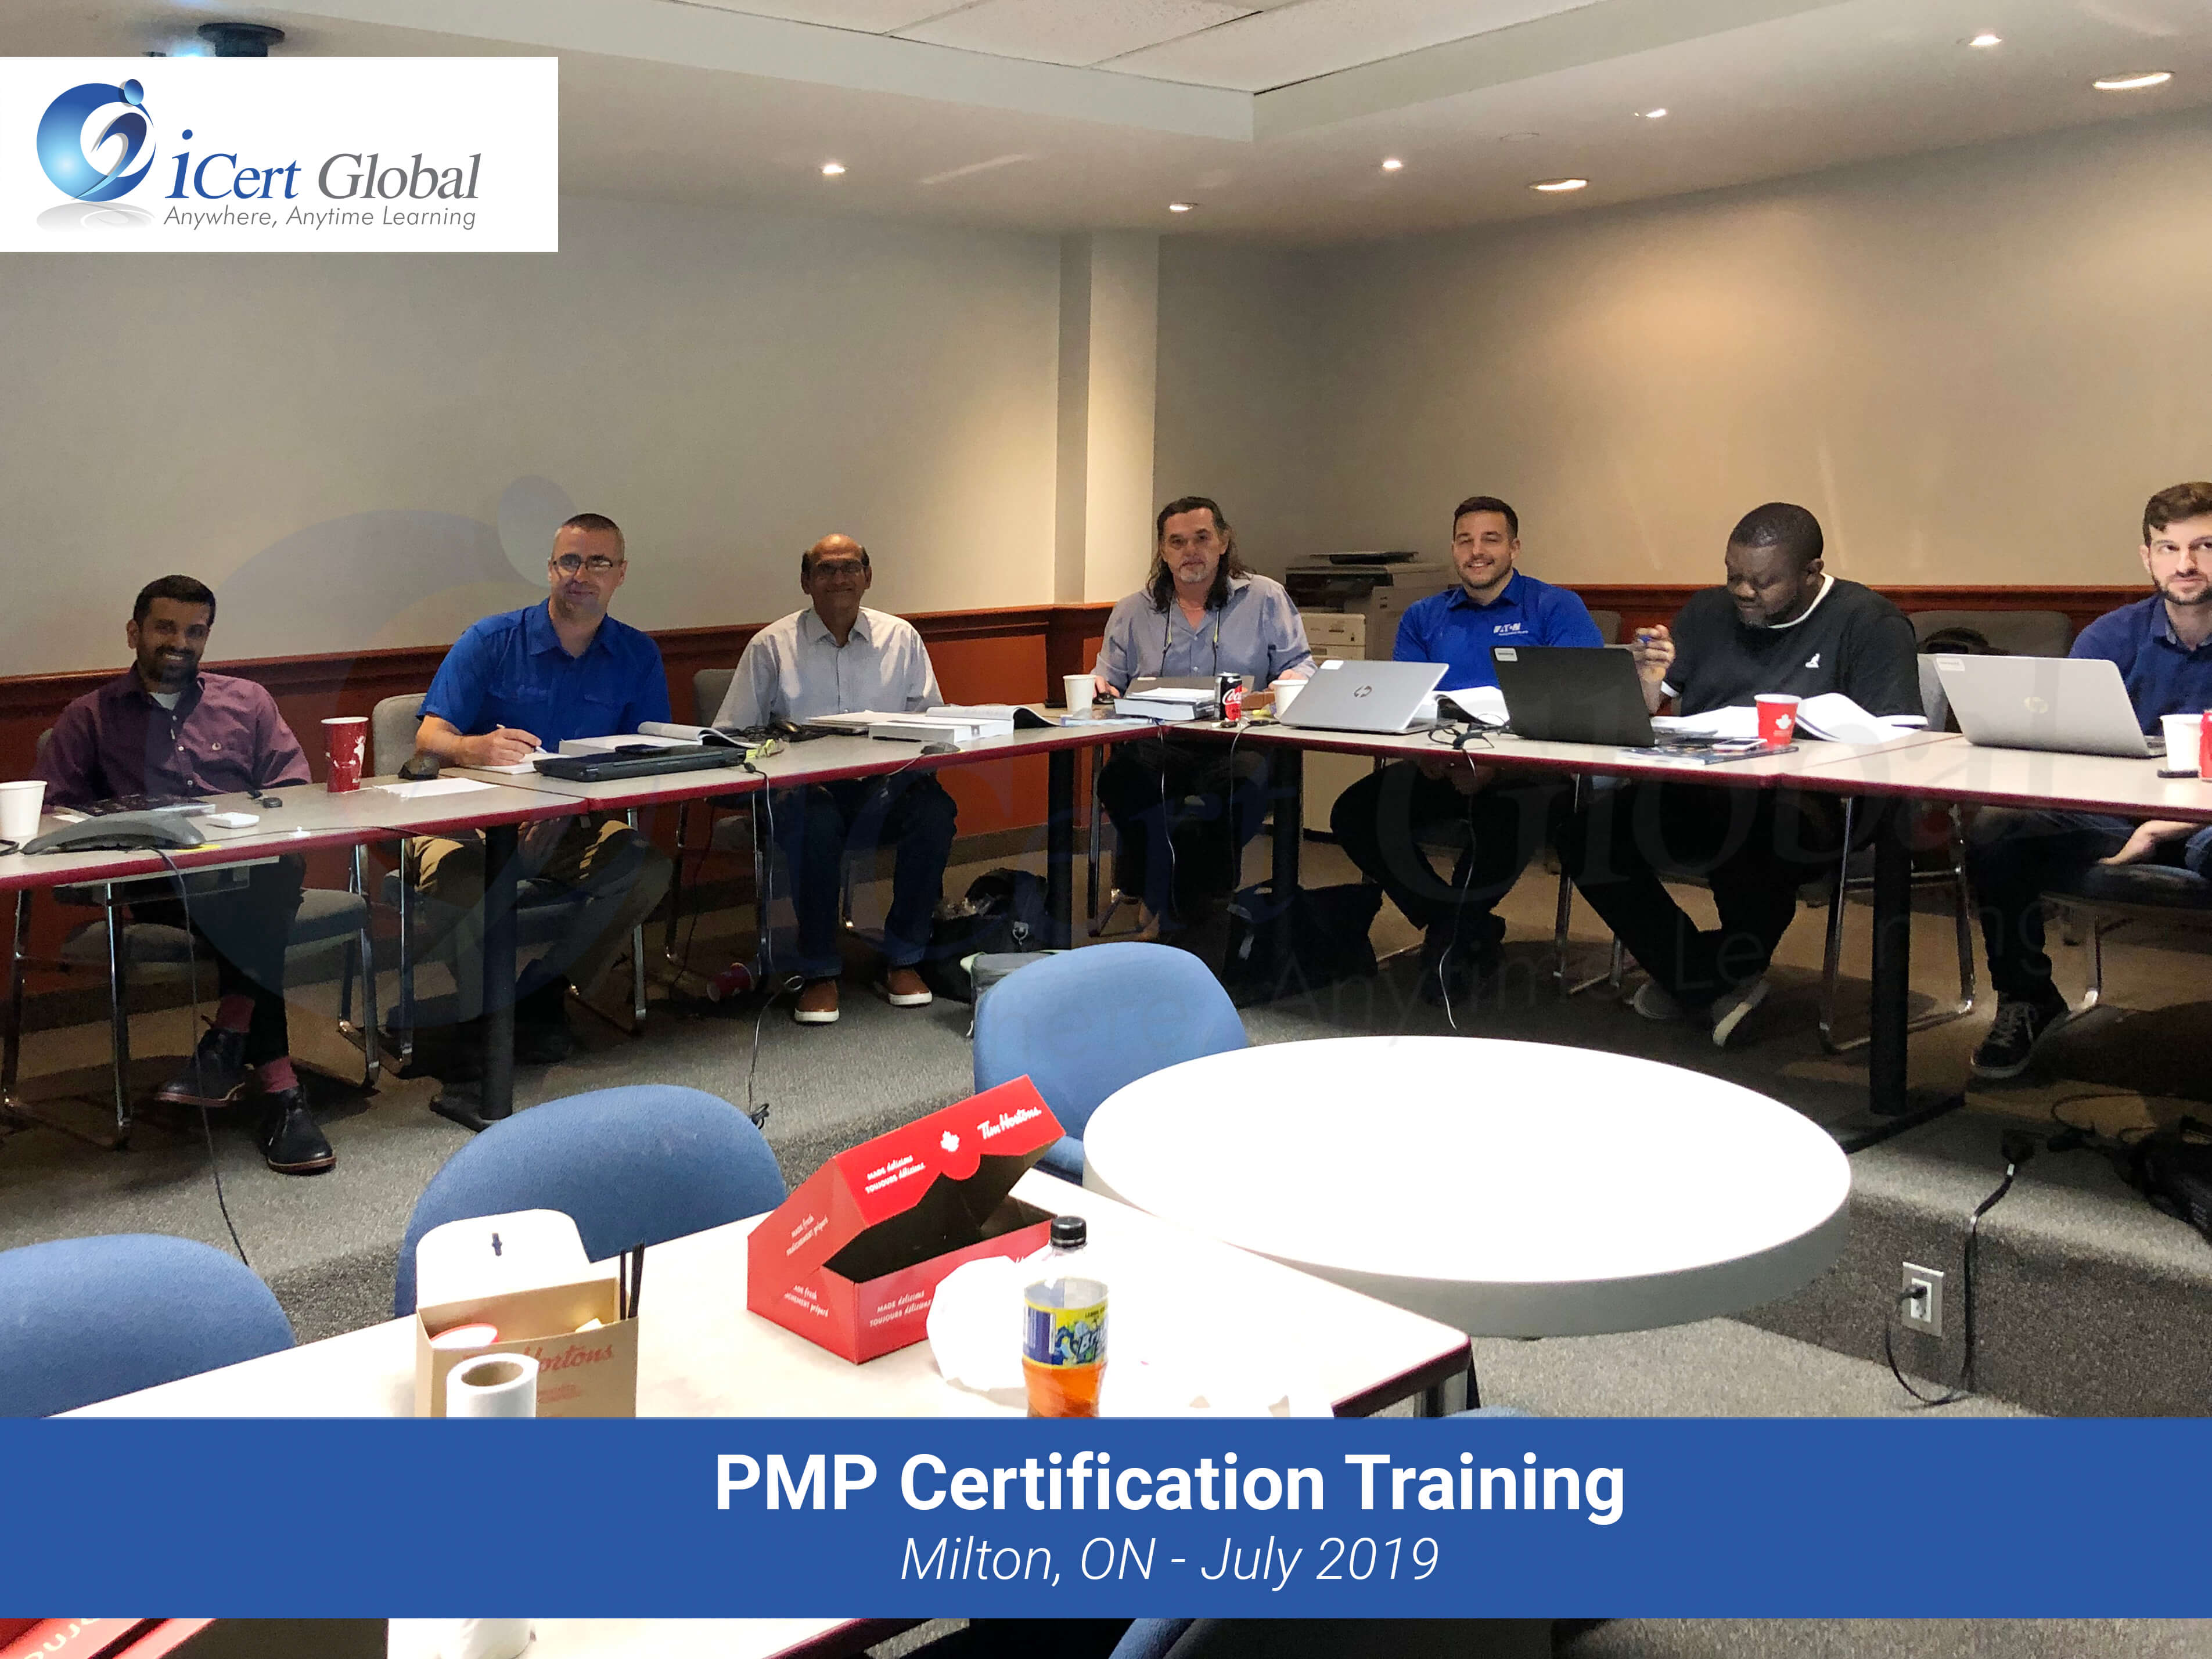 PMP Certification Training Exam Prep Classroom Course in Milton, Ontario, Canada in July 2019